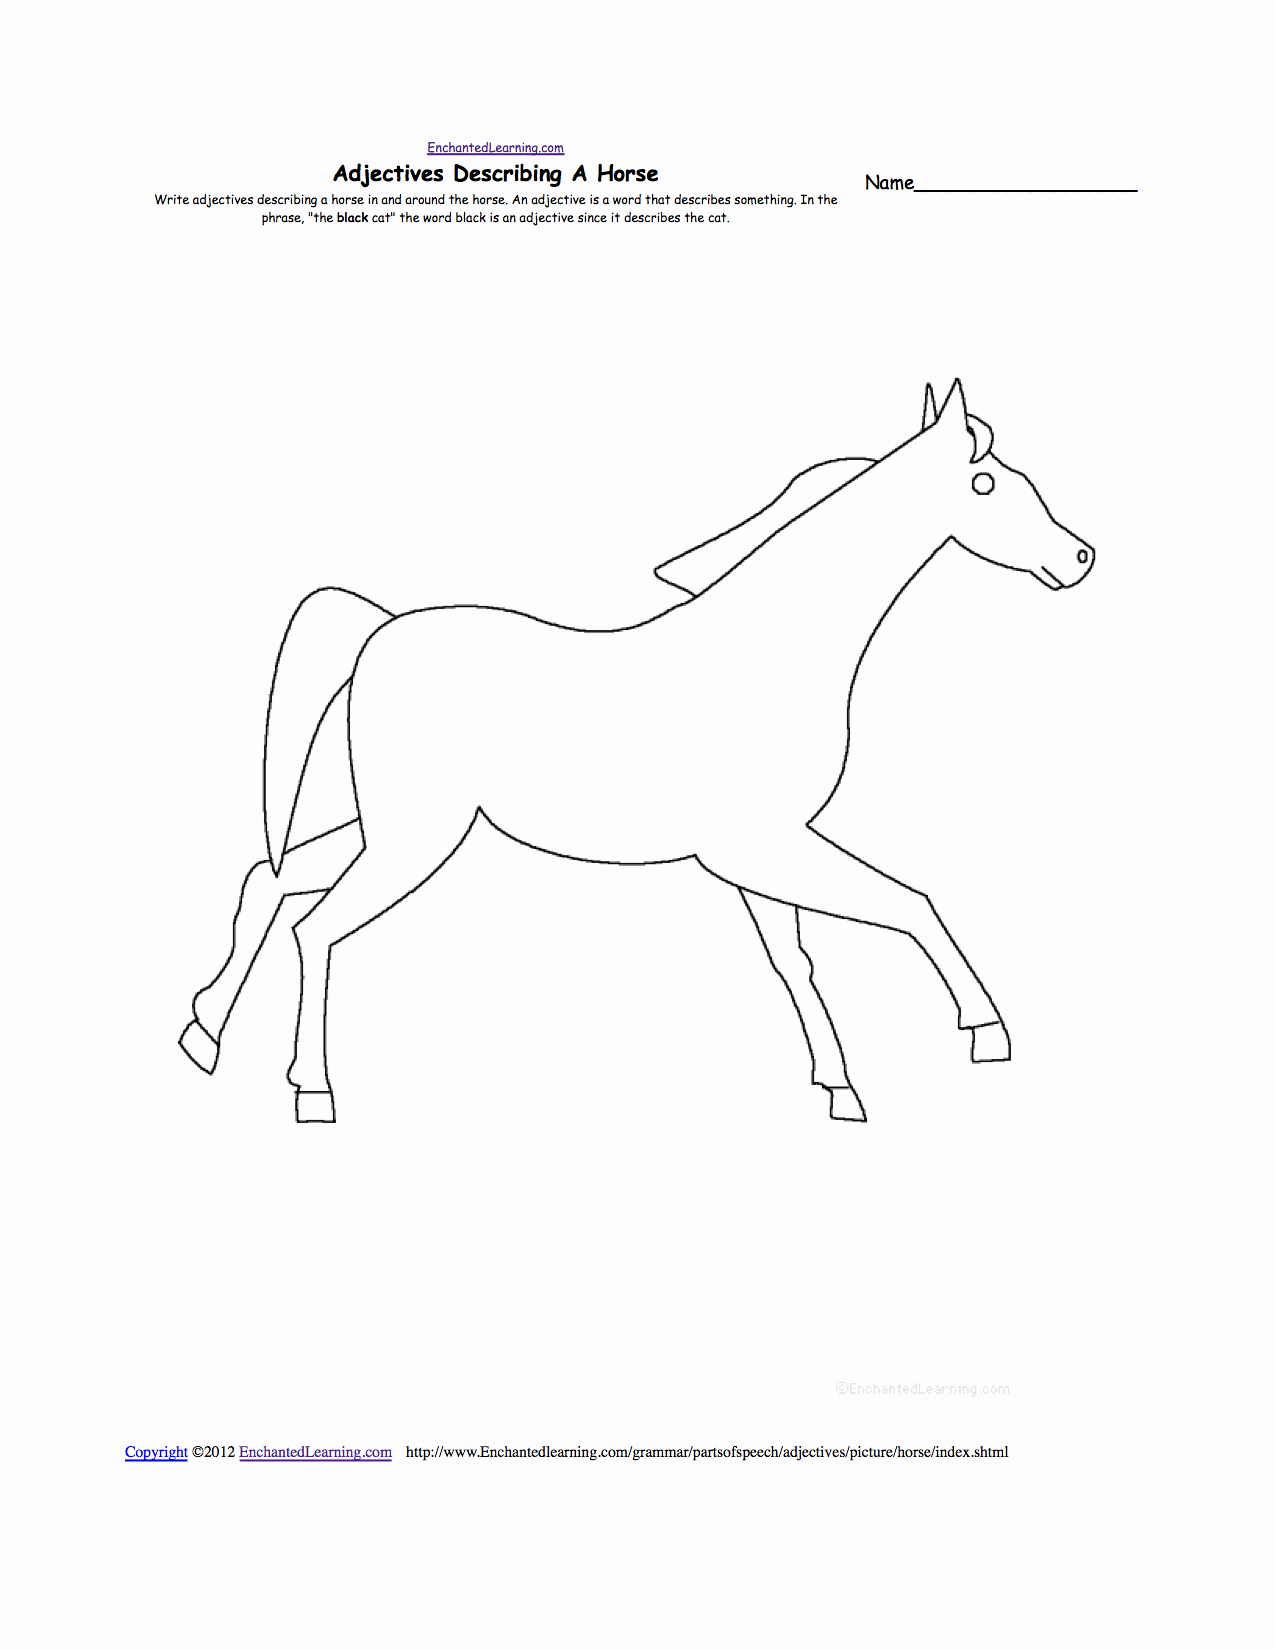 Parts Of the Horse Worksheet Unique Horses at Enchantedlearning